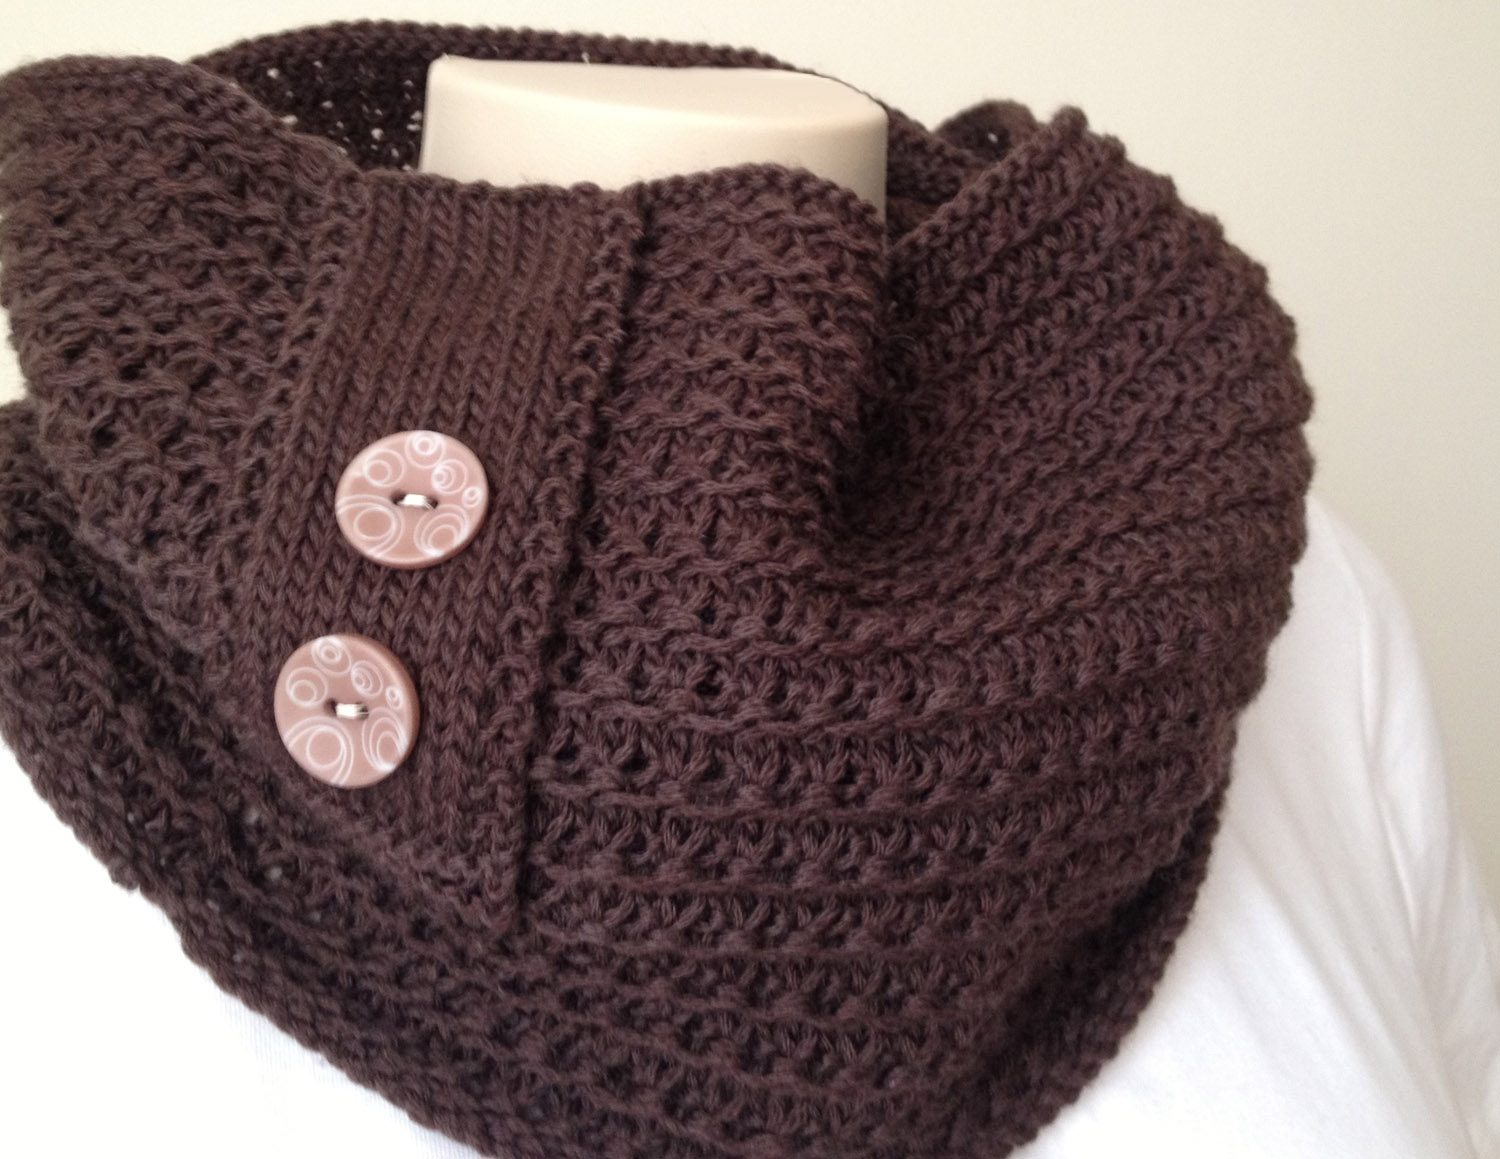 Knitting Pattern Infinity Cowl : New knitting pattern cowl : Chocolate Cowl Deux Brins de Maille